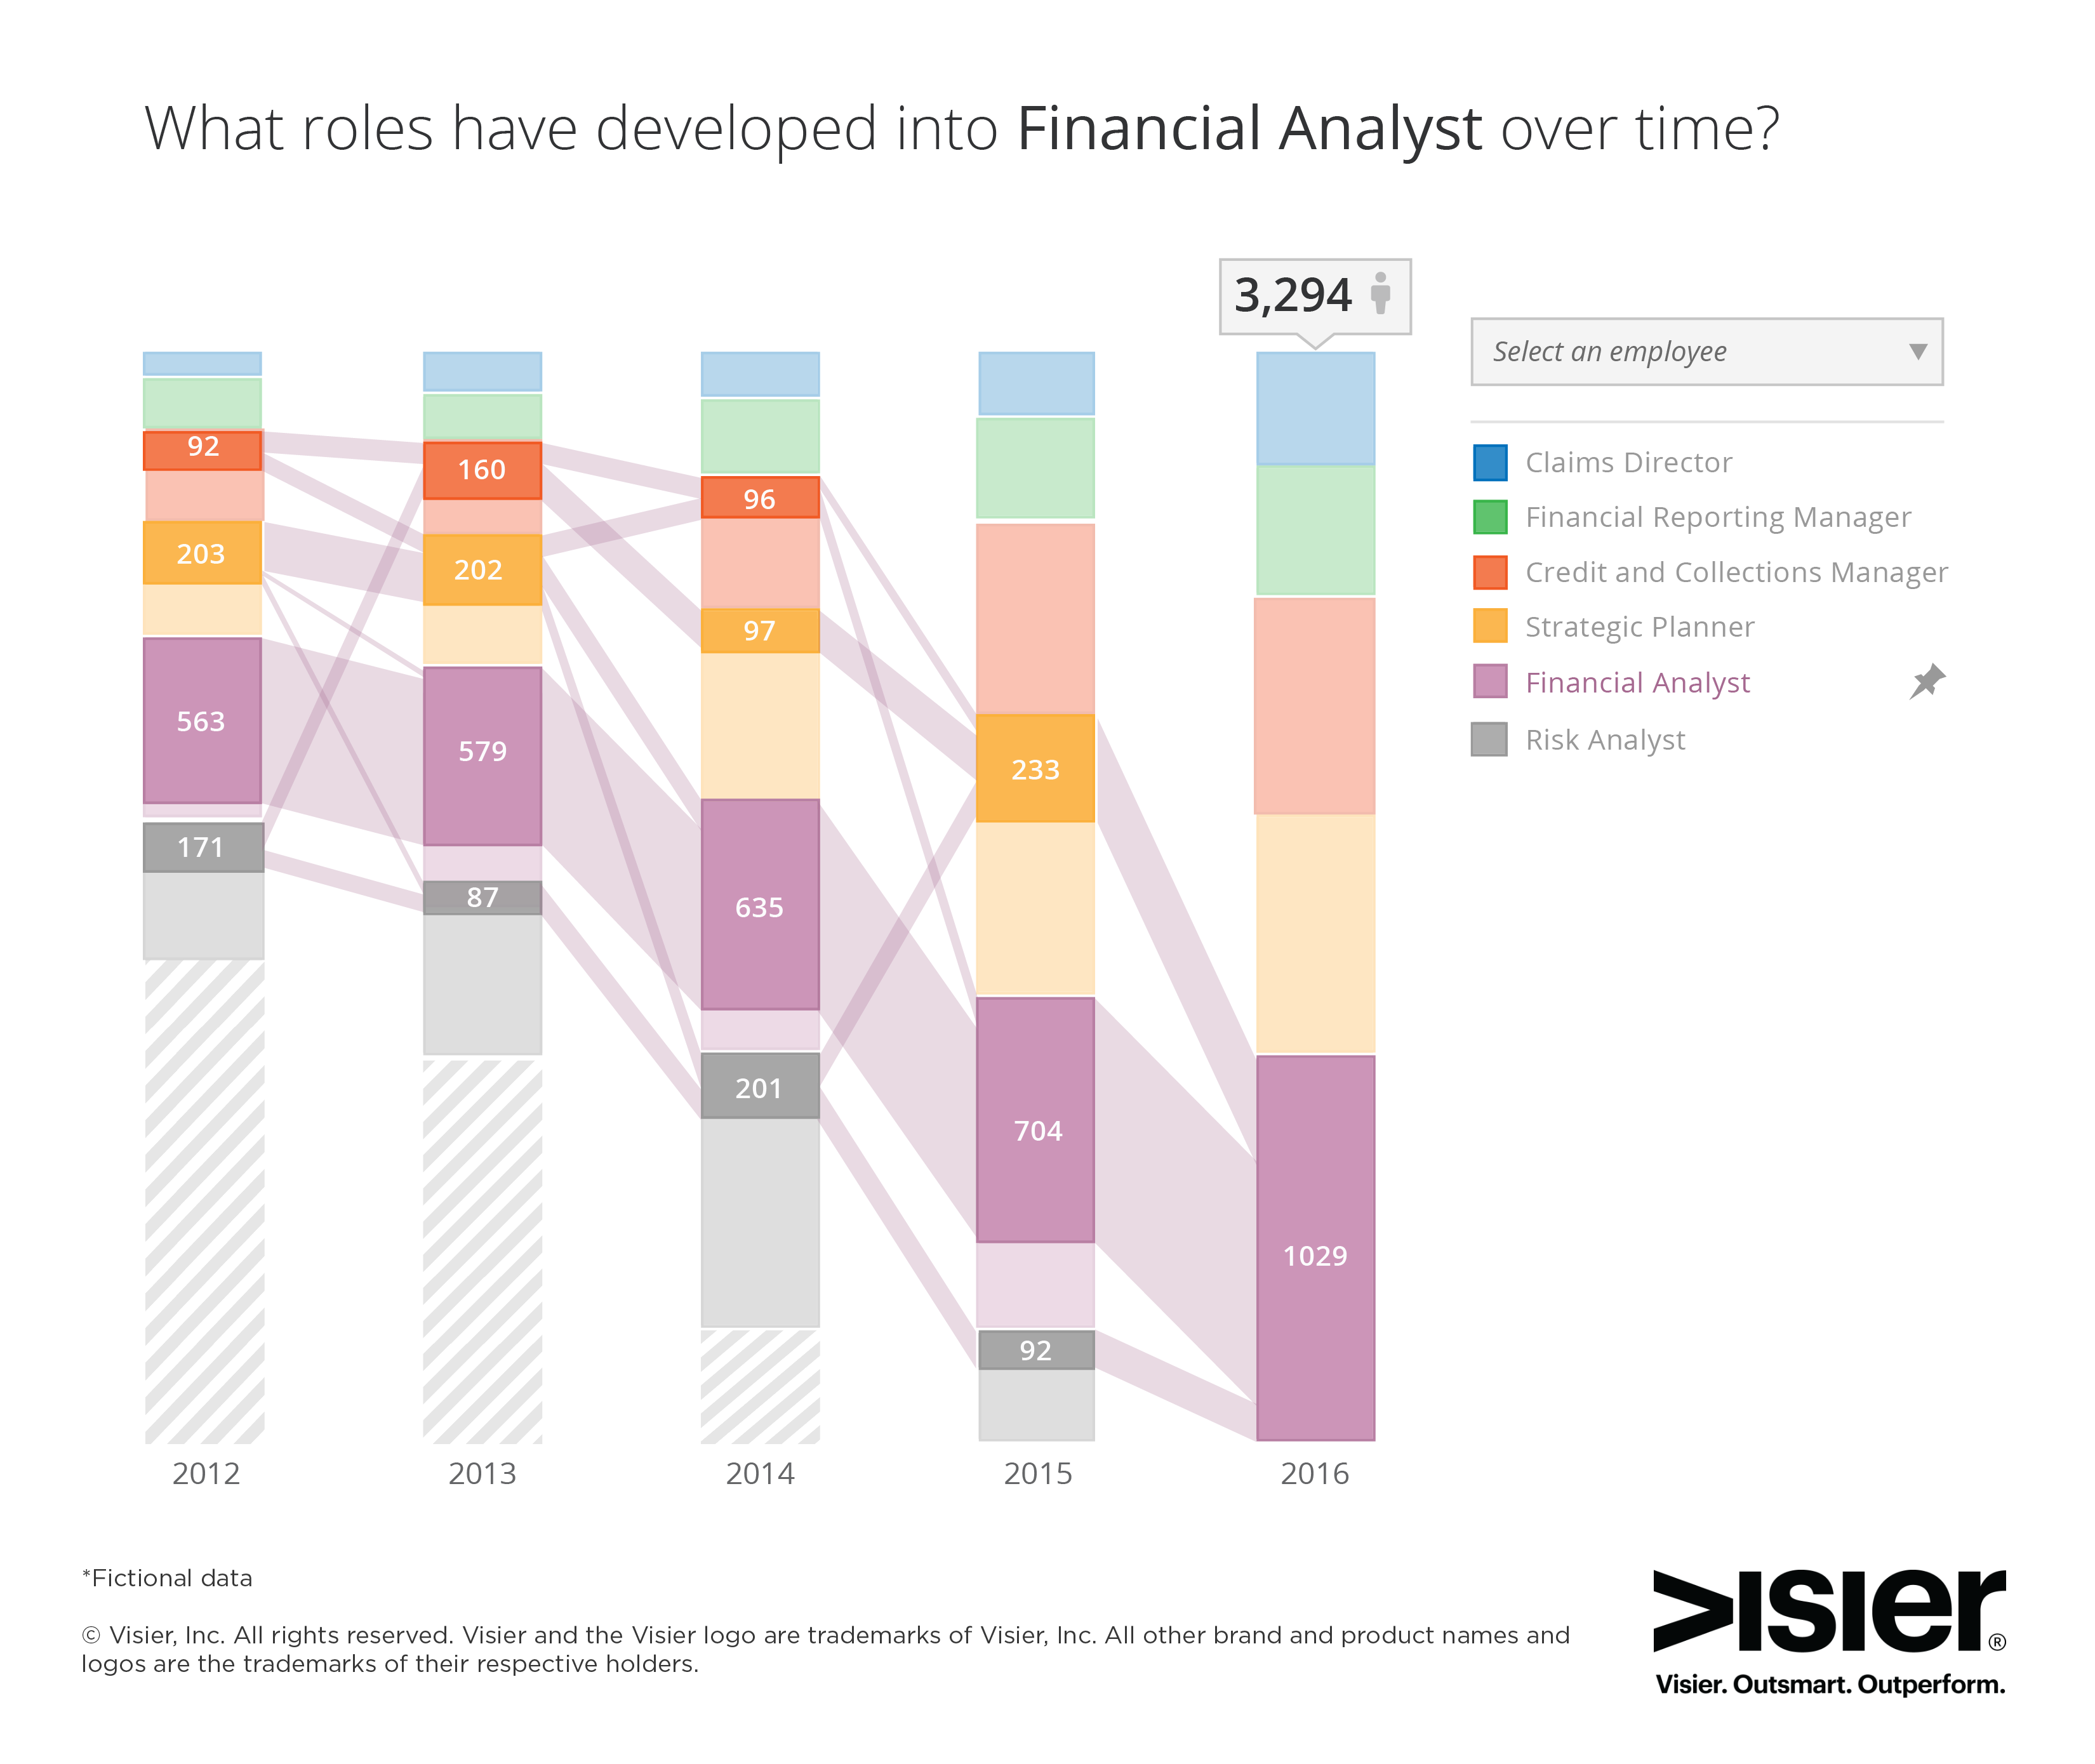 Data visualization on what roles have developed into financial analyst over time